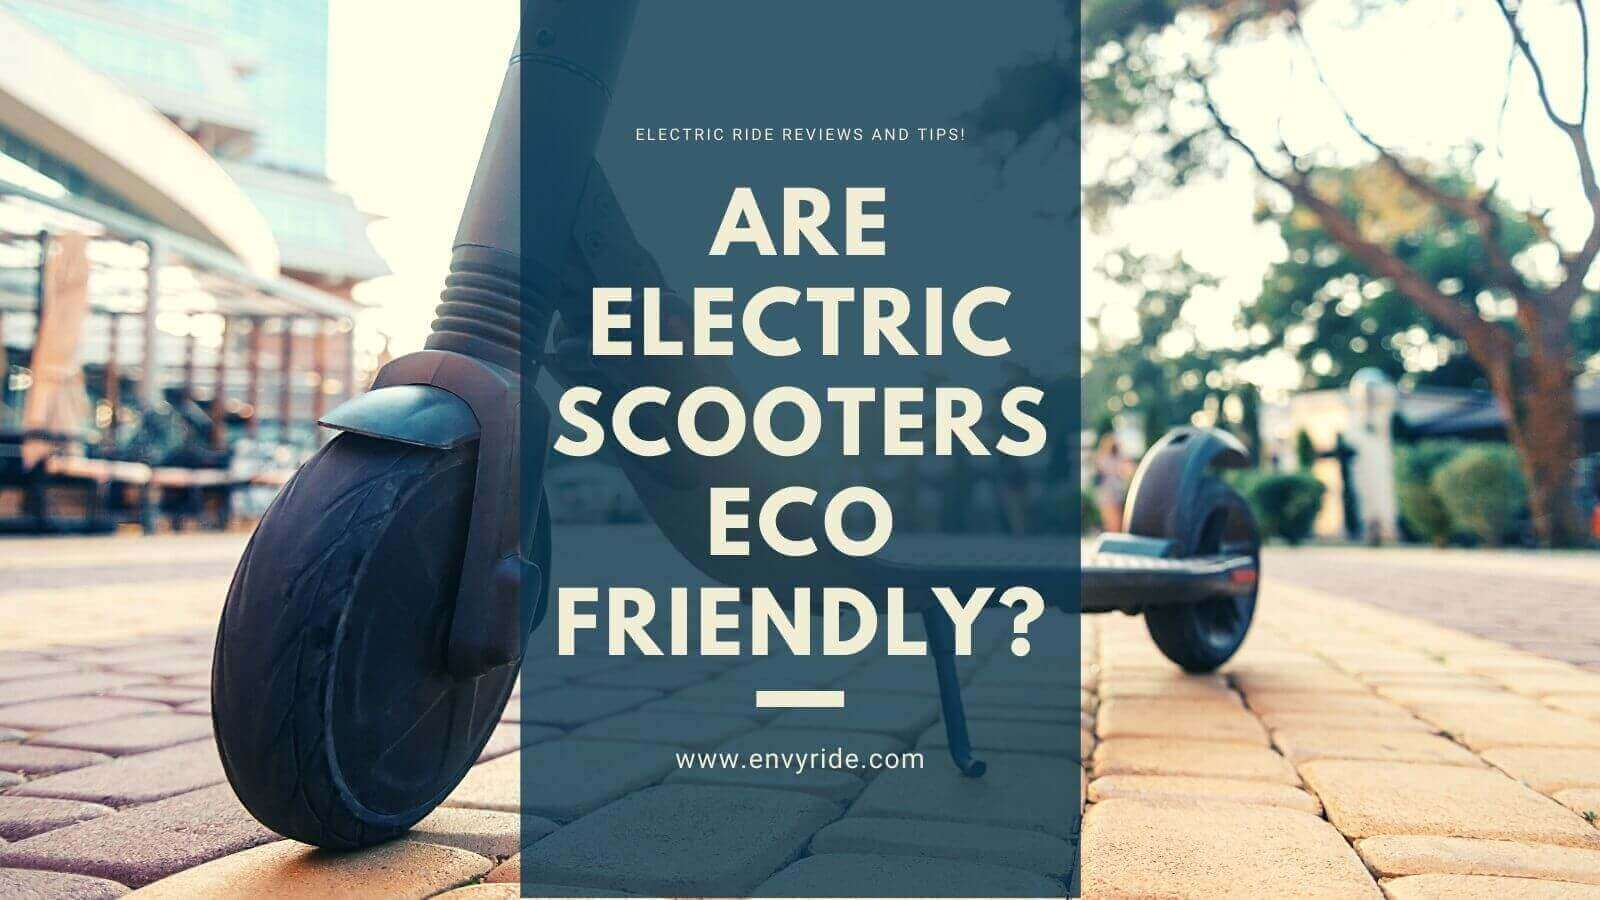 Are electric scooters eco friendly